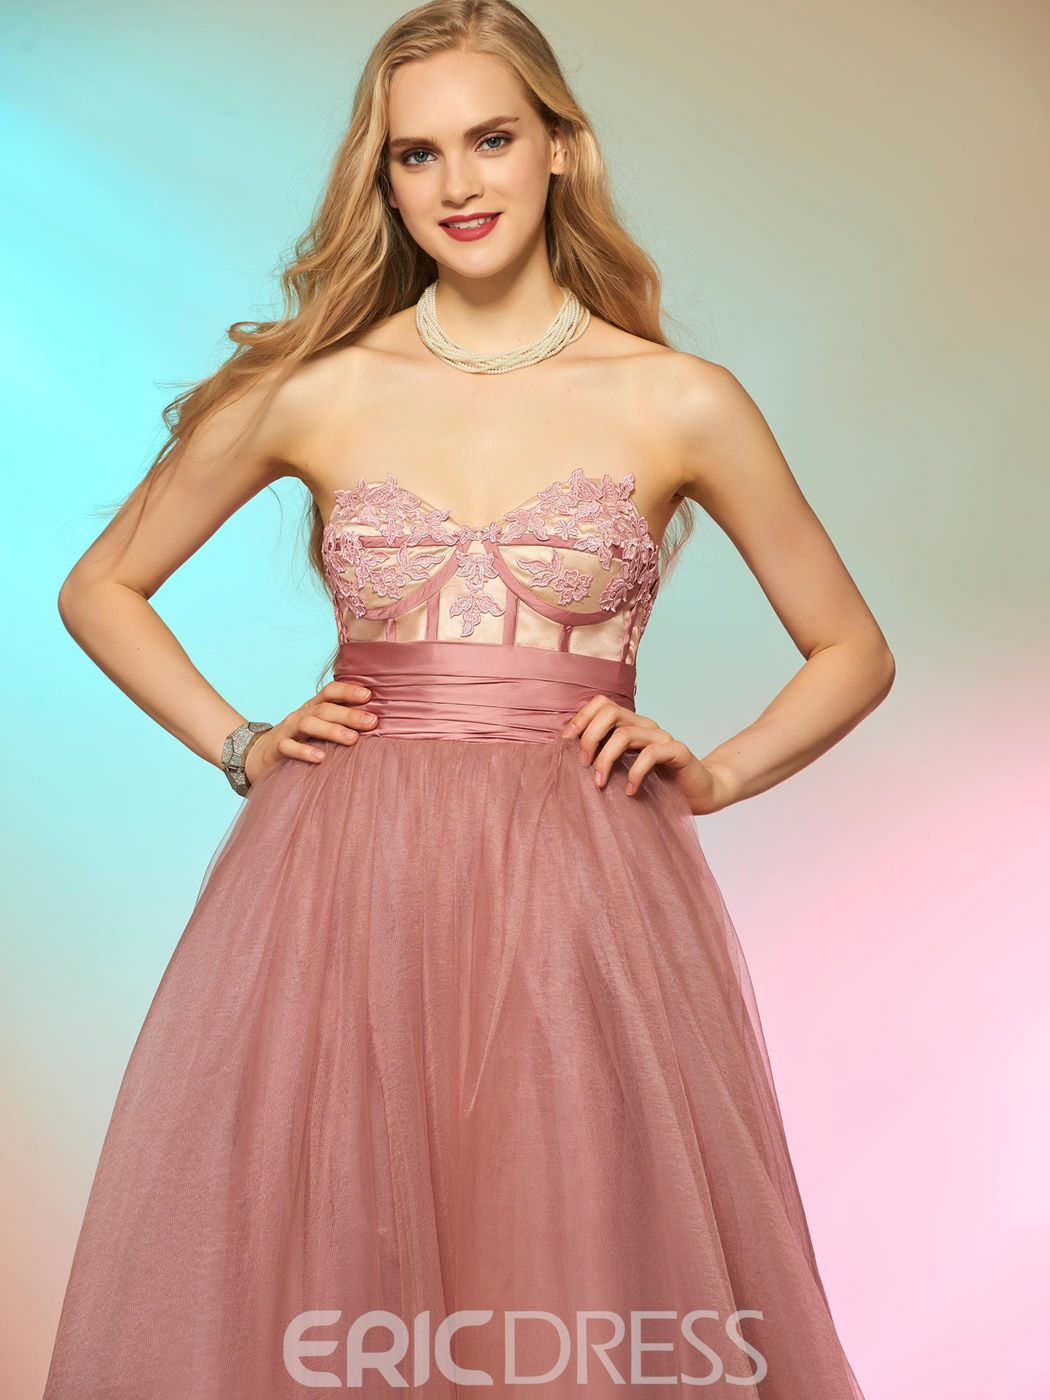 Ericdress Sweetheart A-Line Appliques Bowknot Court Train Prom Dress